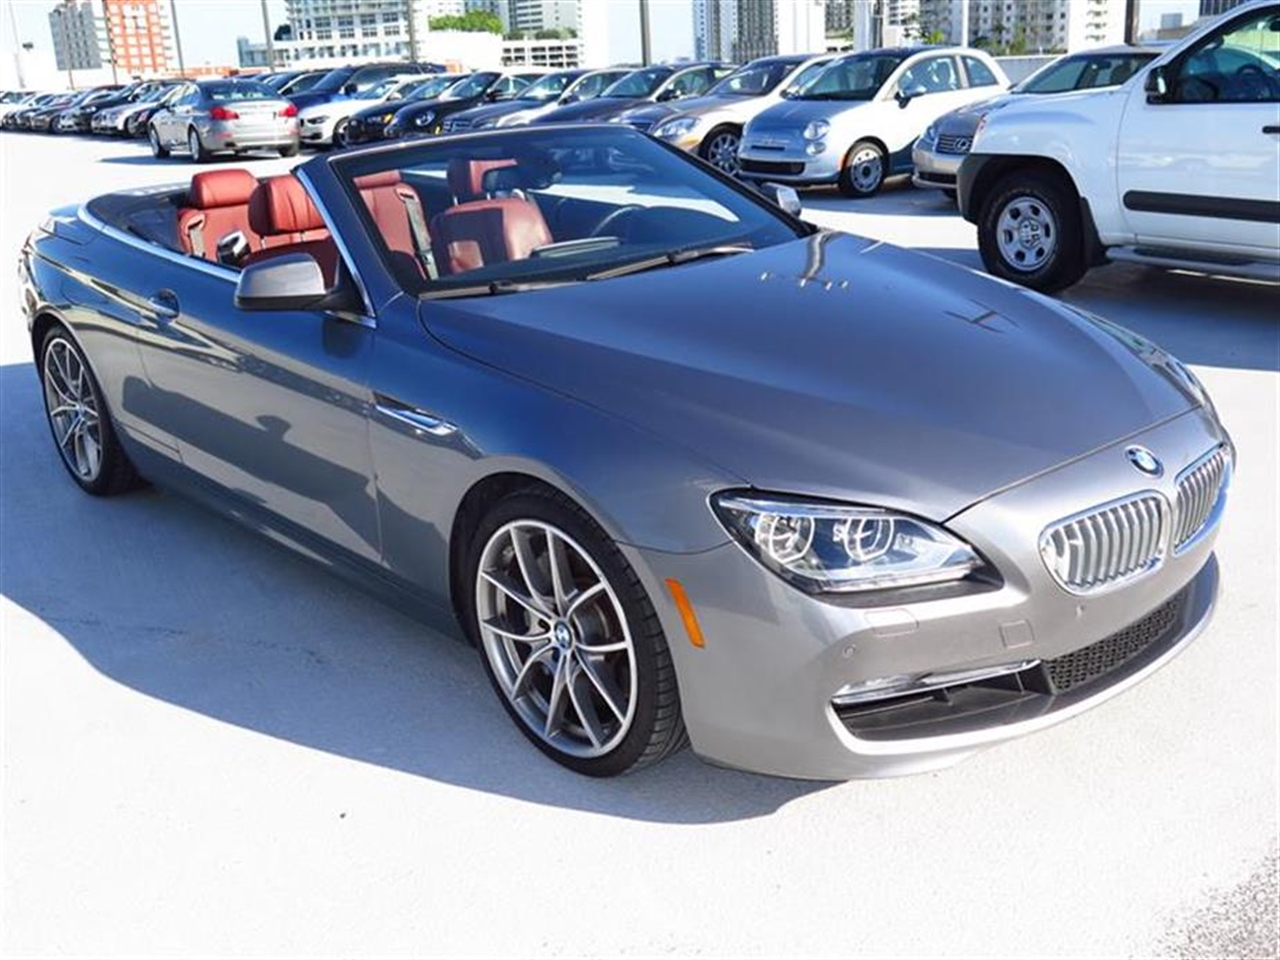 2012 BMW 6 SERIES 2dr Conv 650i 13879 miles Ambiance interior lighting Anti-theft alarm system -i